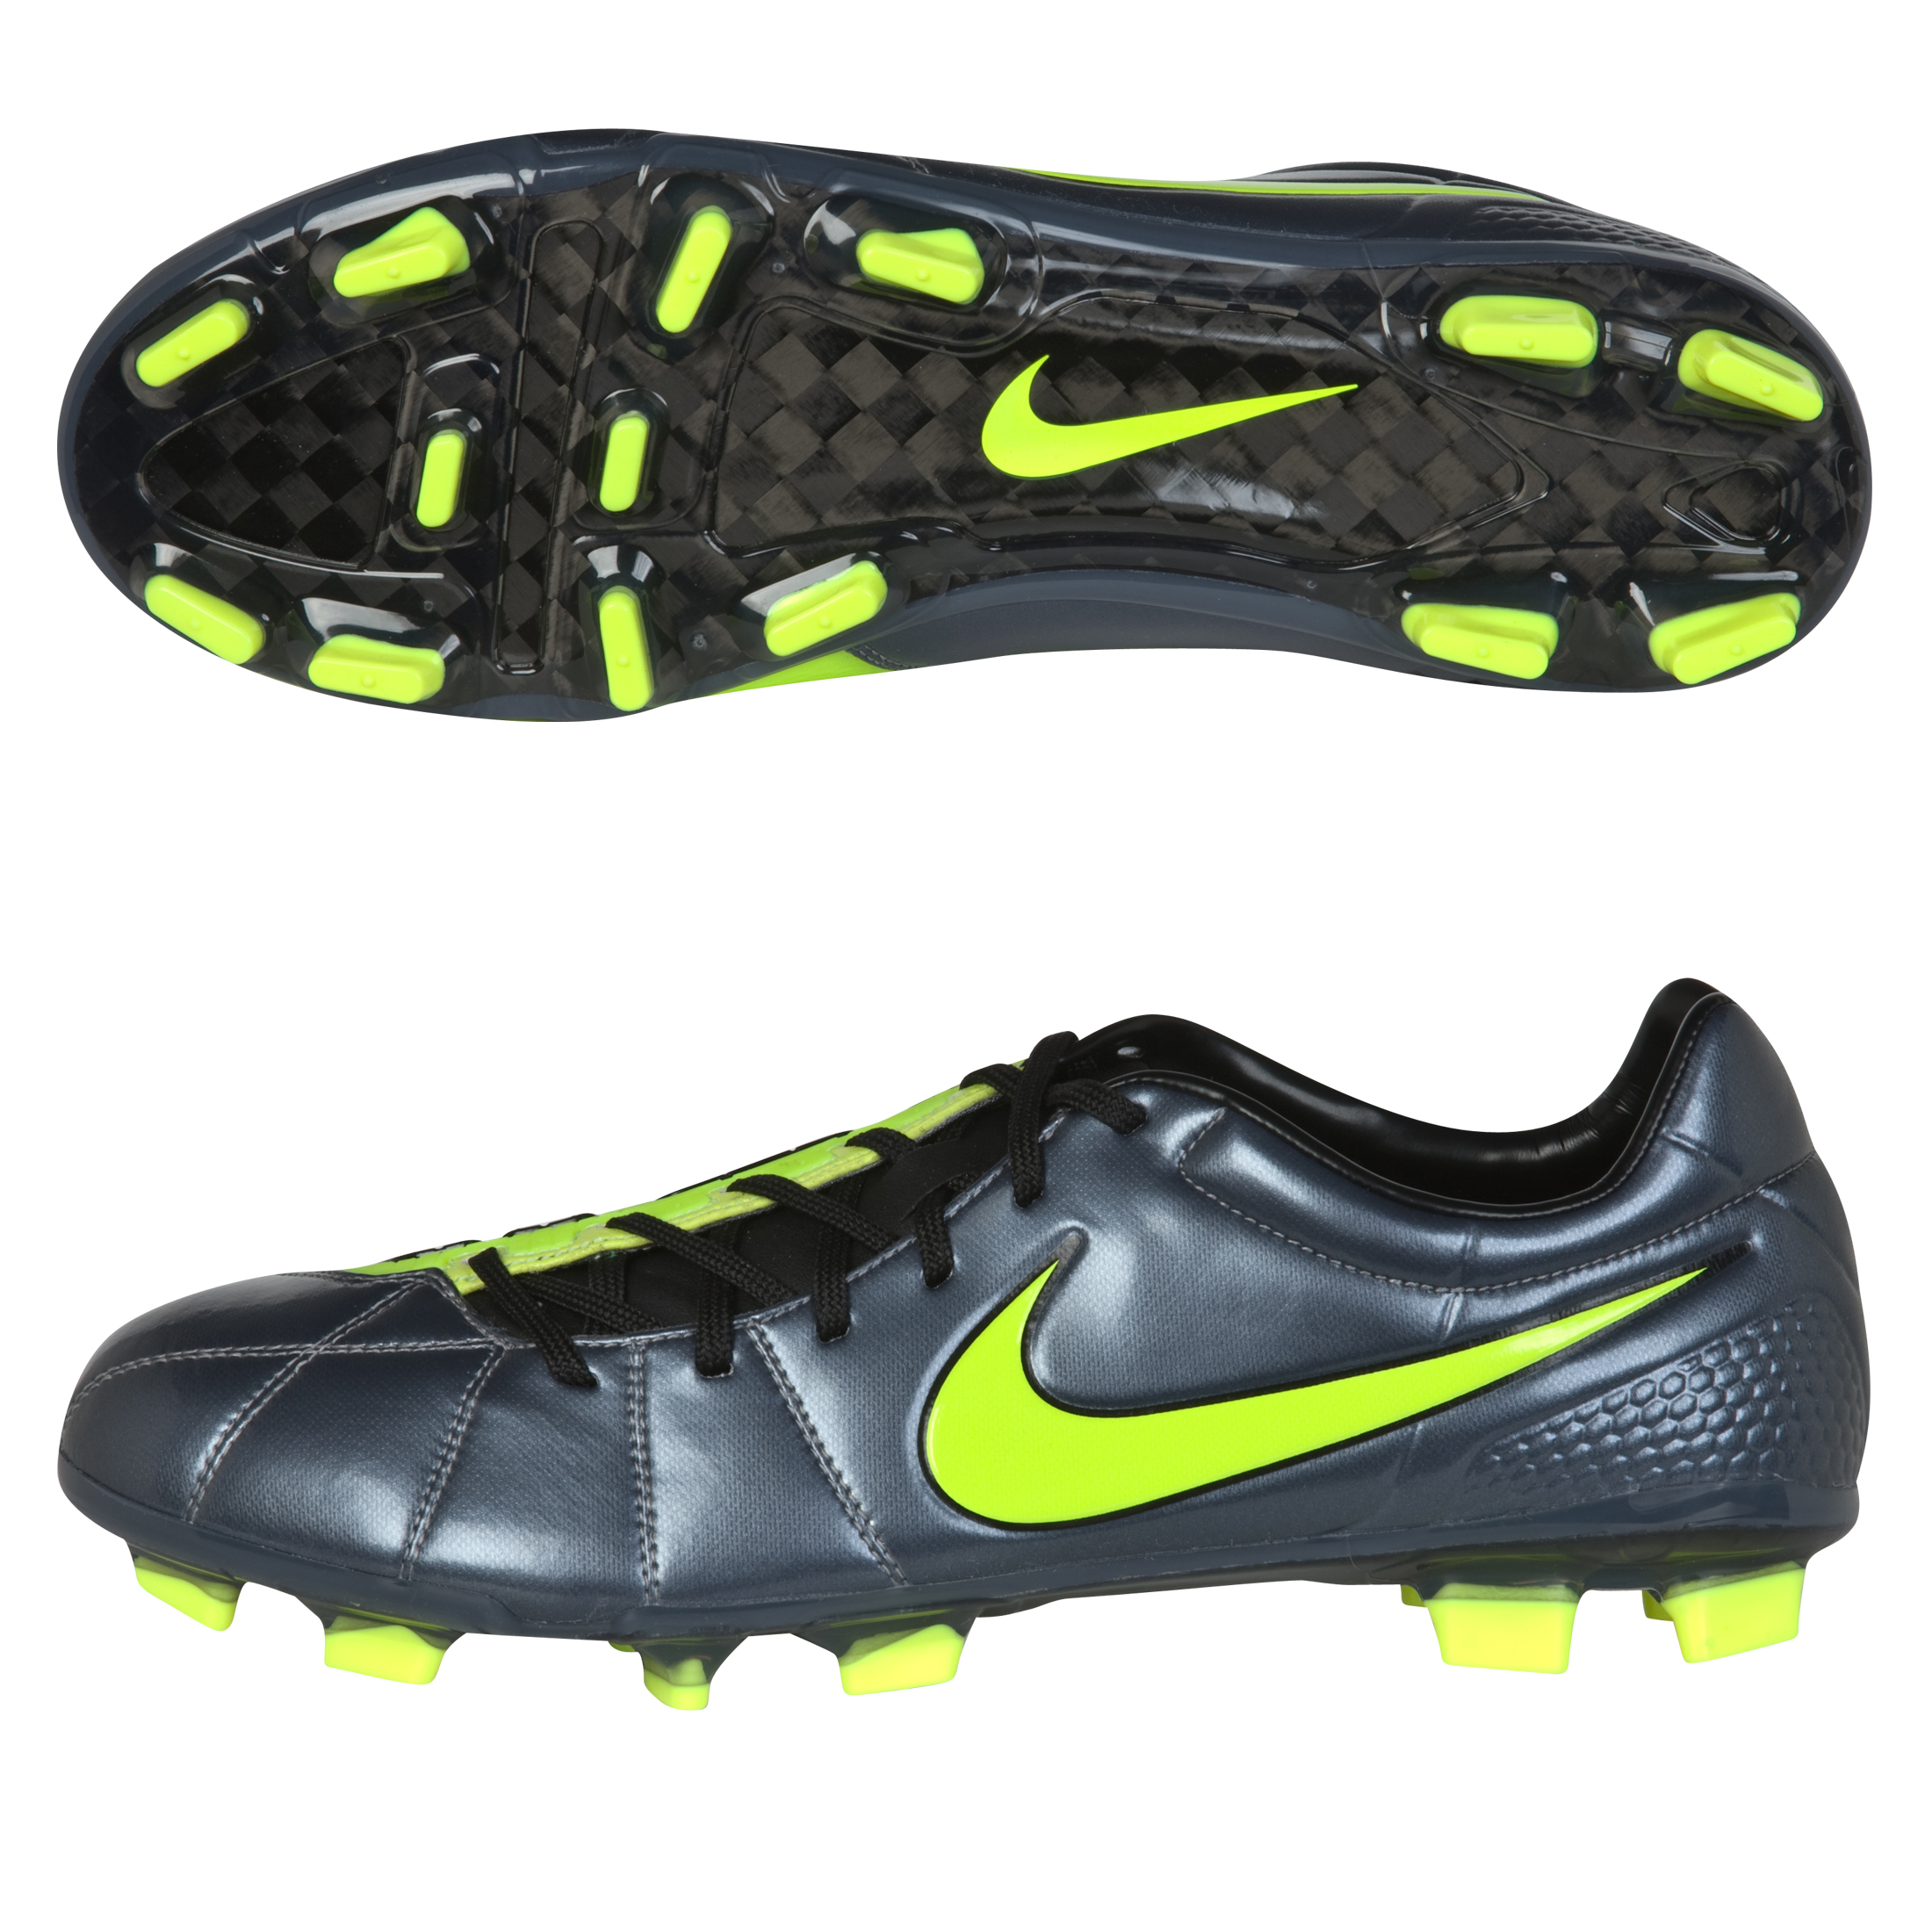 Nike T90 Laser III Elite Firm Ground Football Boots - Metallic Blue Dusk/ Volt/Black